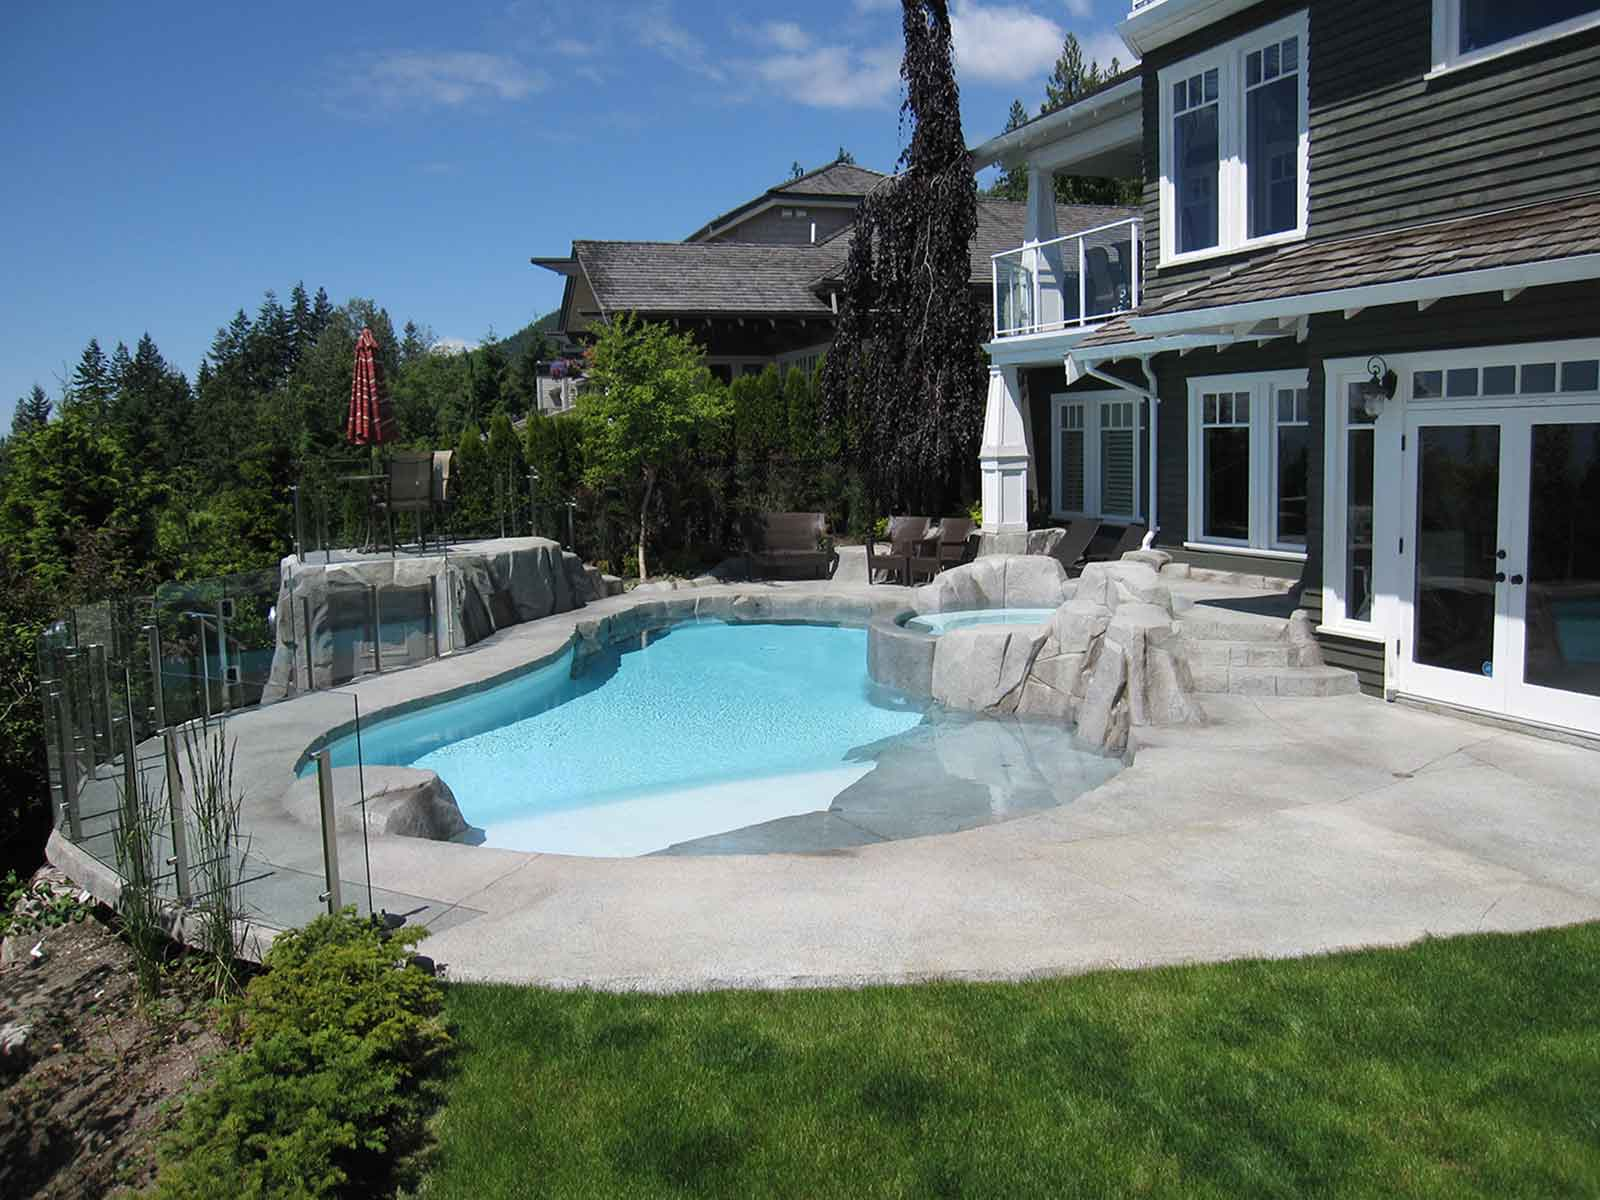 Backyard custom designed swimming pool and patio